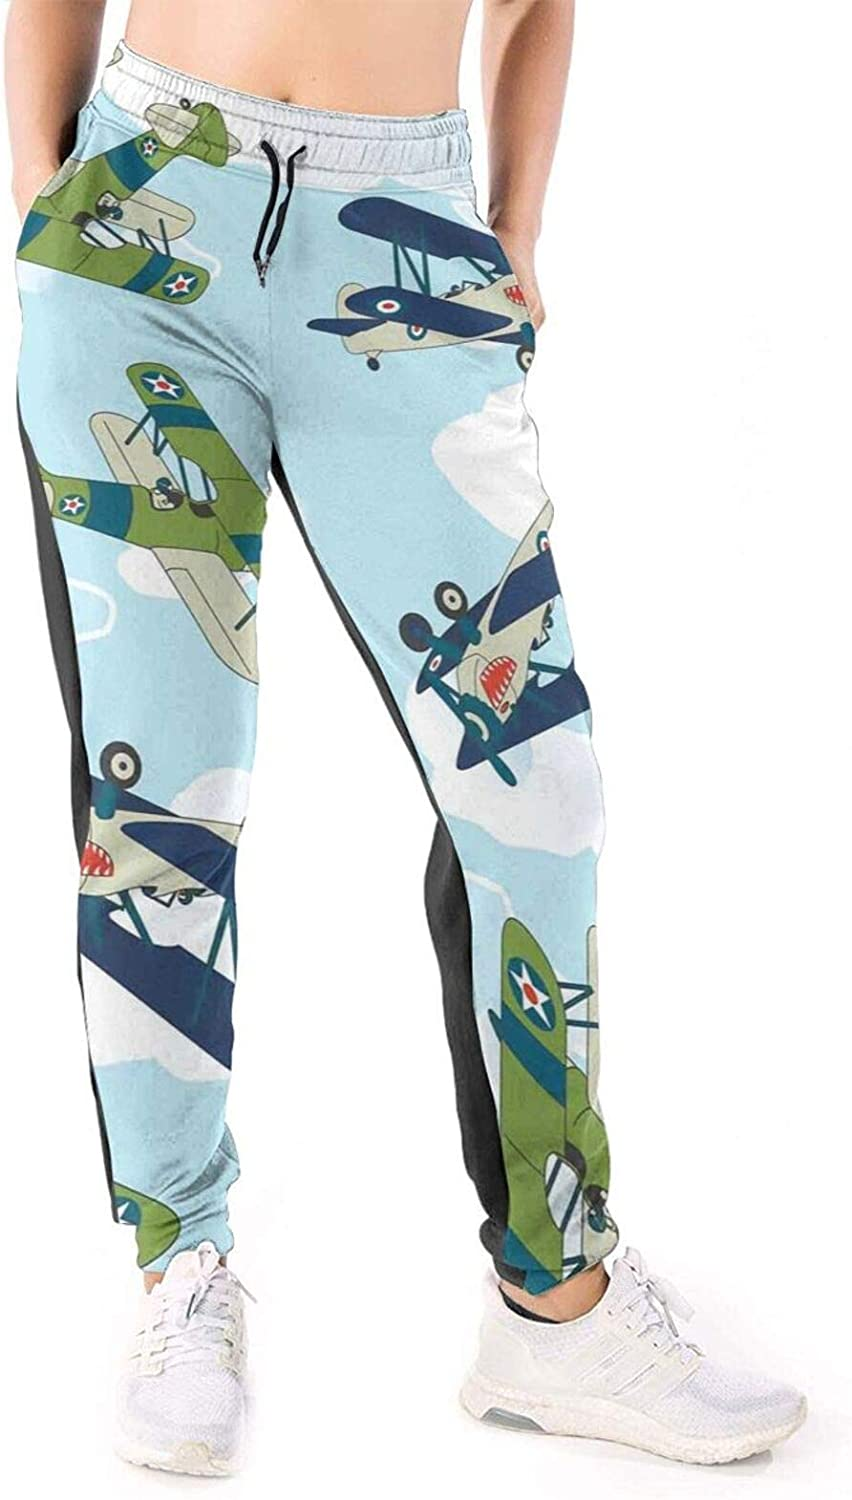 LONEA Women Joggers Pants Cartoon Allied Plane Flying Athletic Sweatpants with Pockets Casual Trousers Baggy